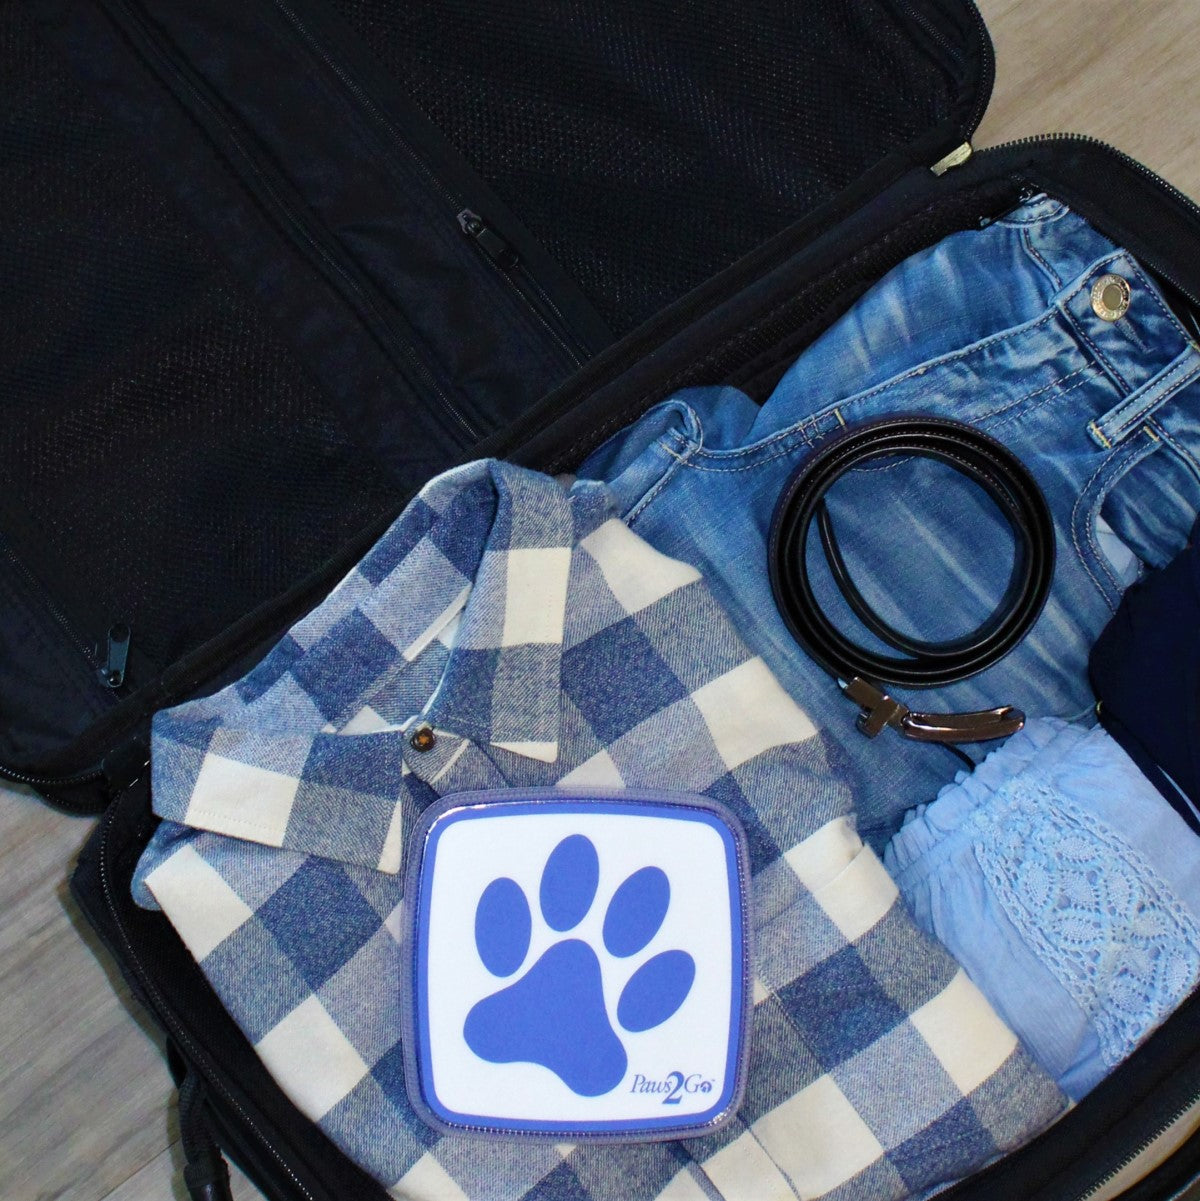 Paws2Go in suitcase ready for travel